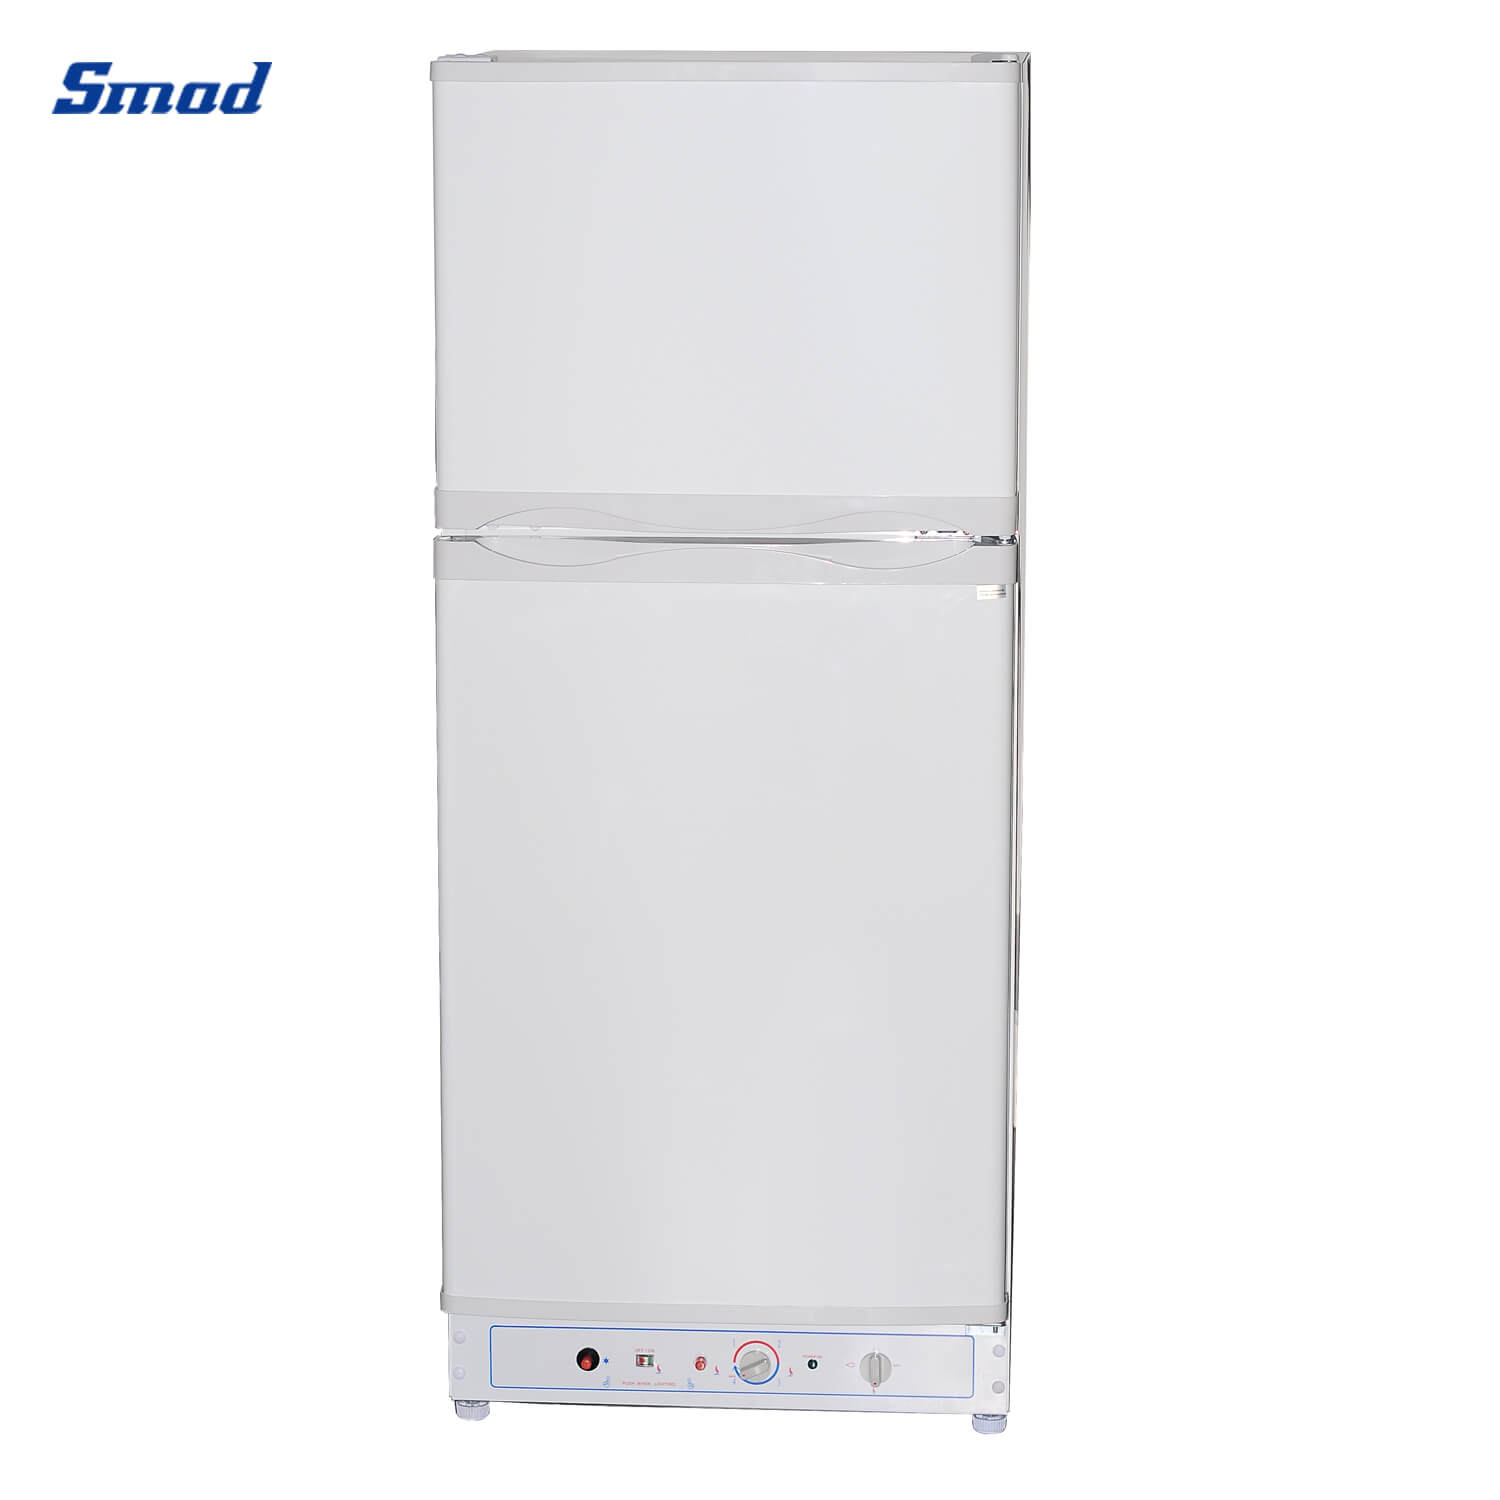 Smad gas refrigerator side with recessed handle white color